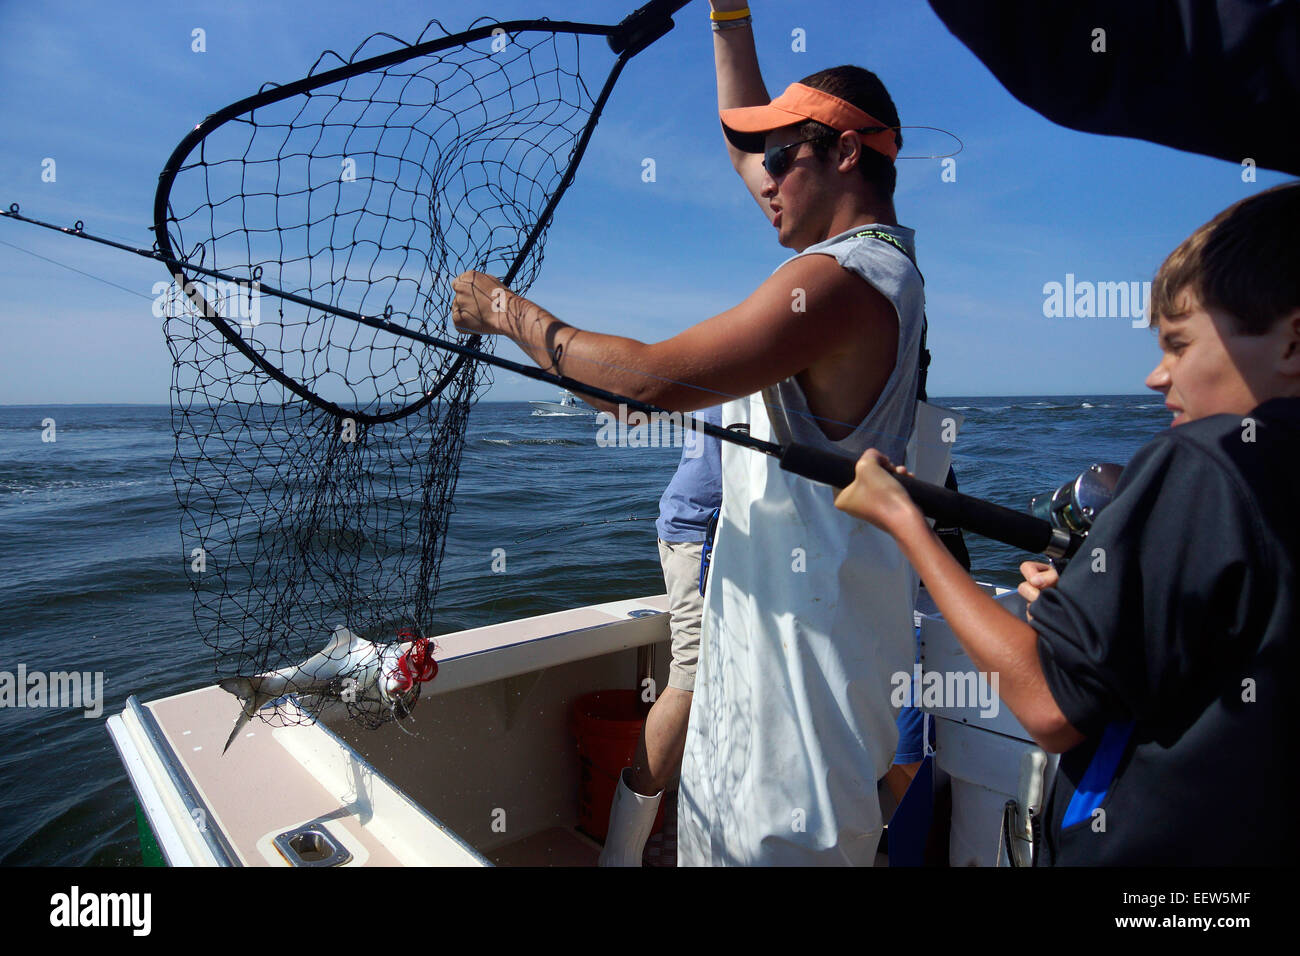 Bluefishing on a charter boat in Clinton, CT USA - Stock Image